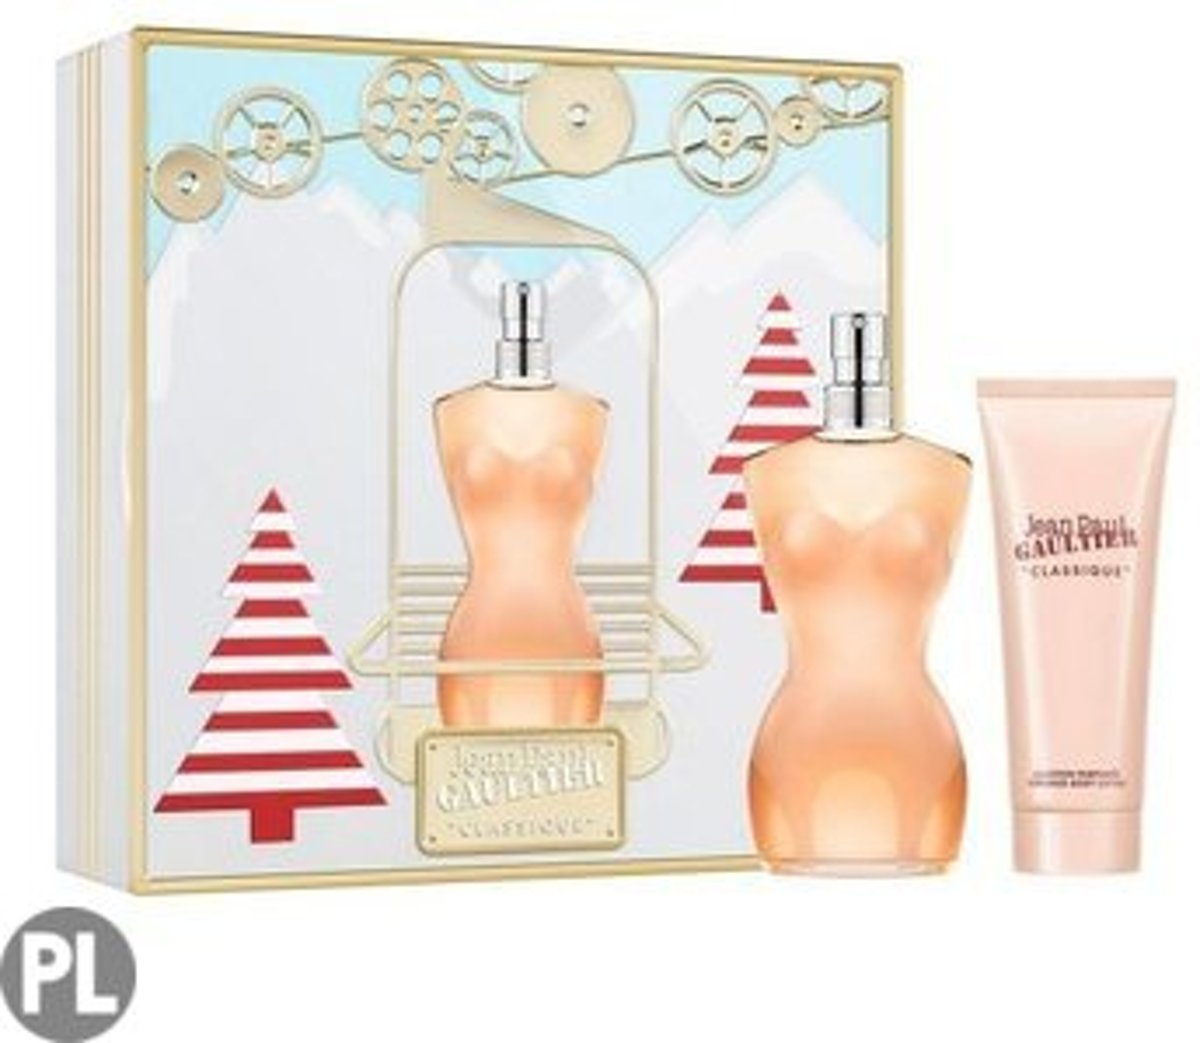 Jean Paul Gaultier Classique 100ml Edt Spray / 75ml Perfumed Body Lotion